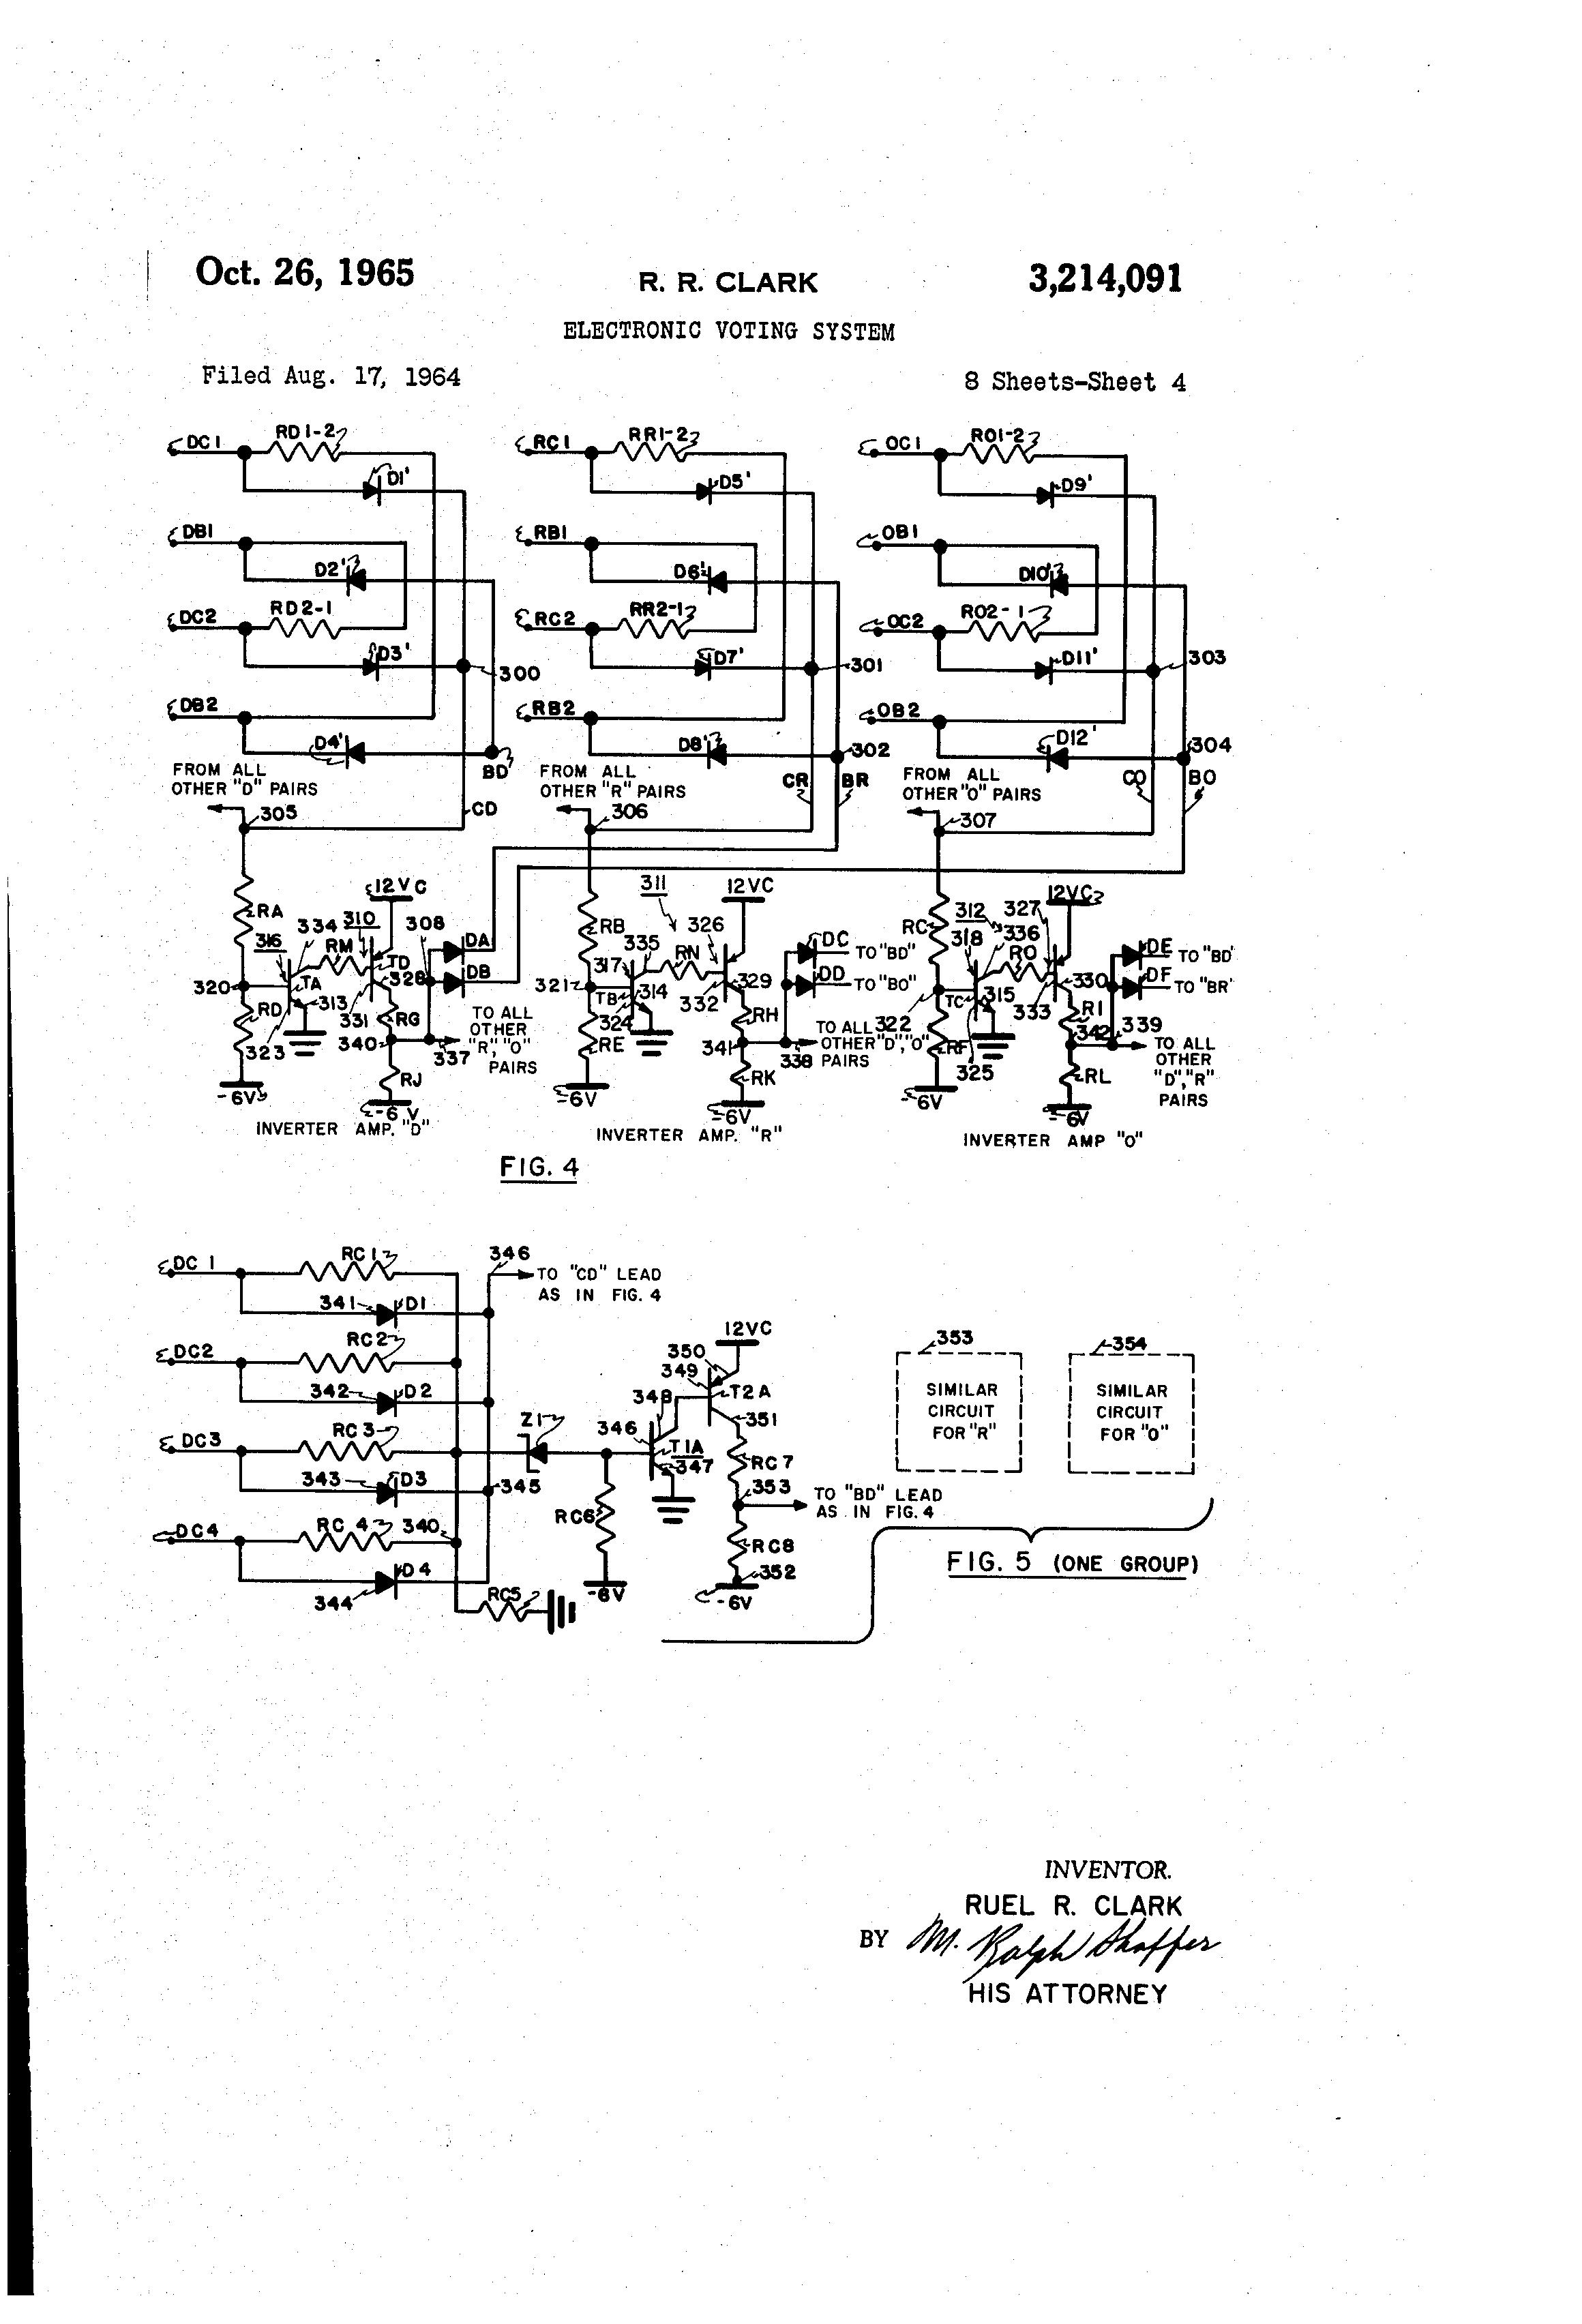 patent us3214091 - electronic voting system